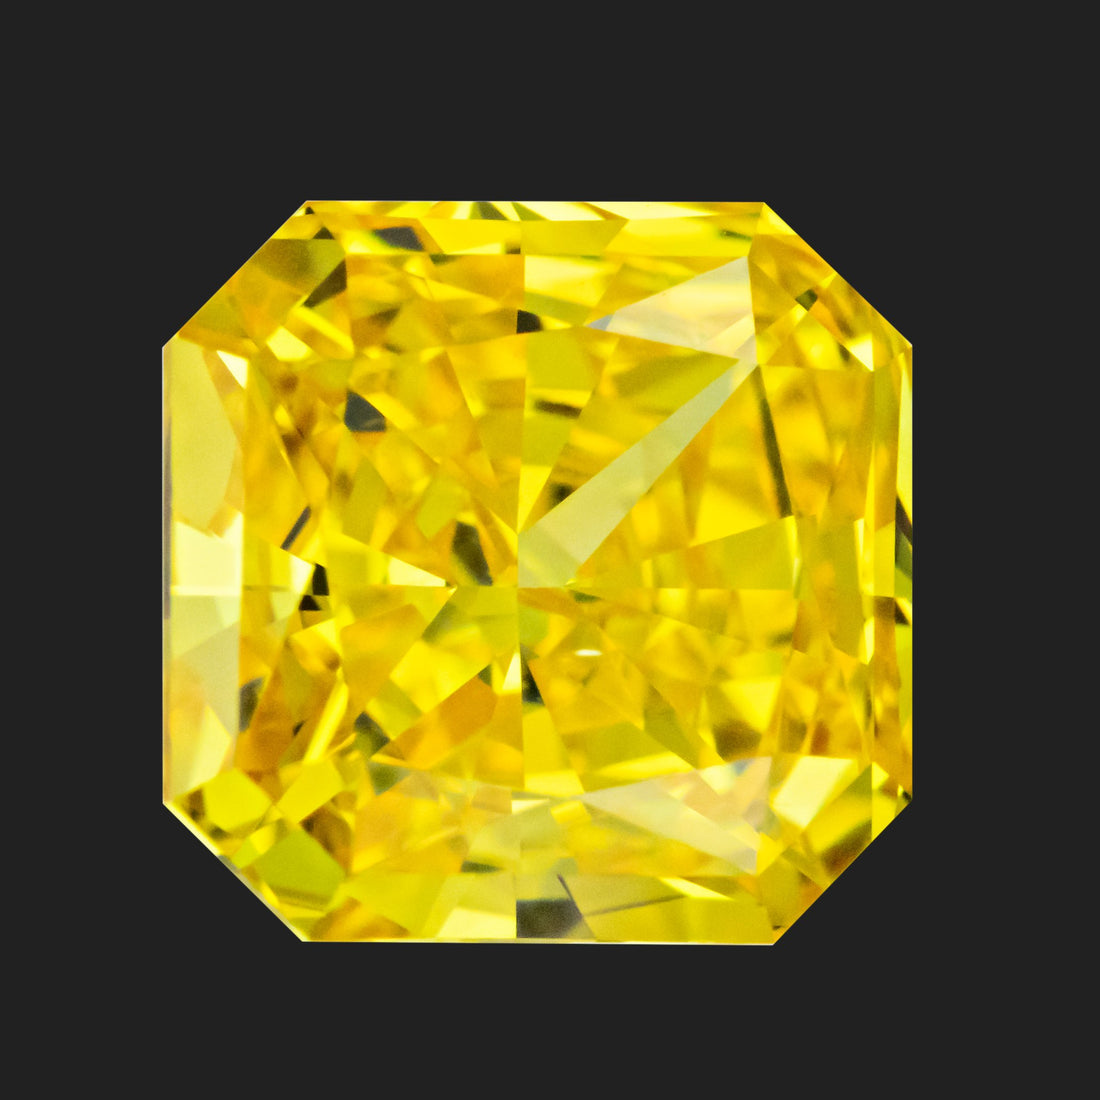 2.01 Carat Radiant Cut Fancy Vivid Orangy Yellow Lab Created Diamond